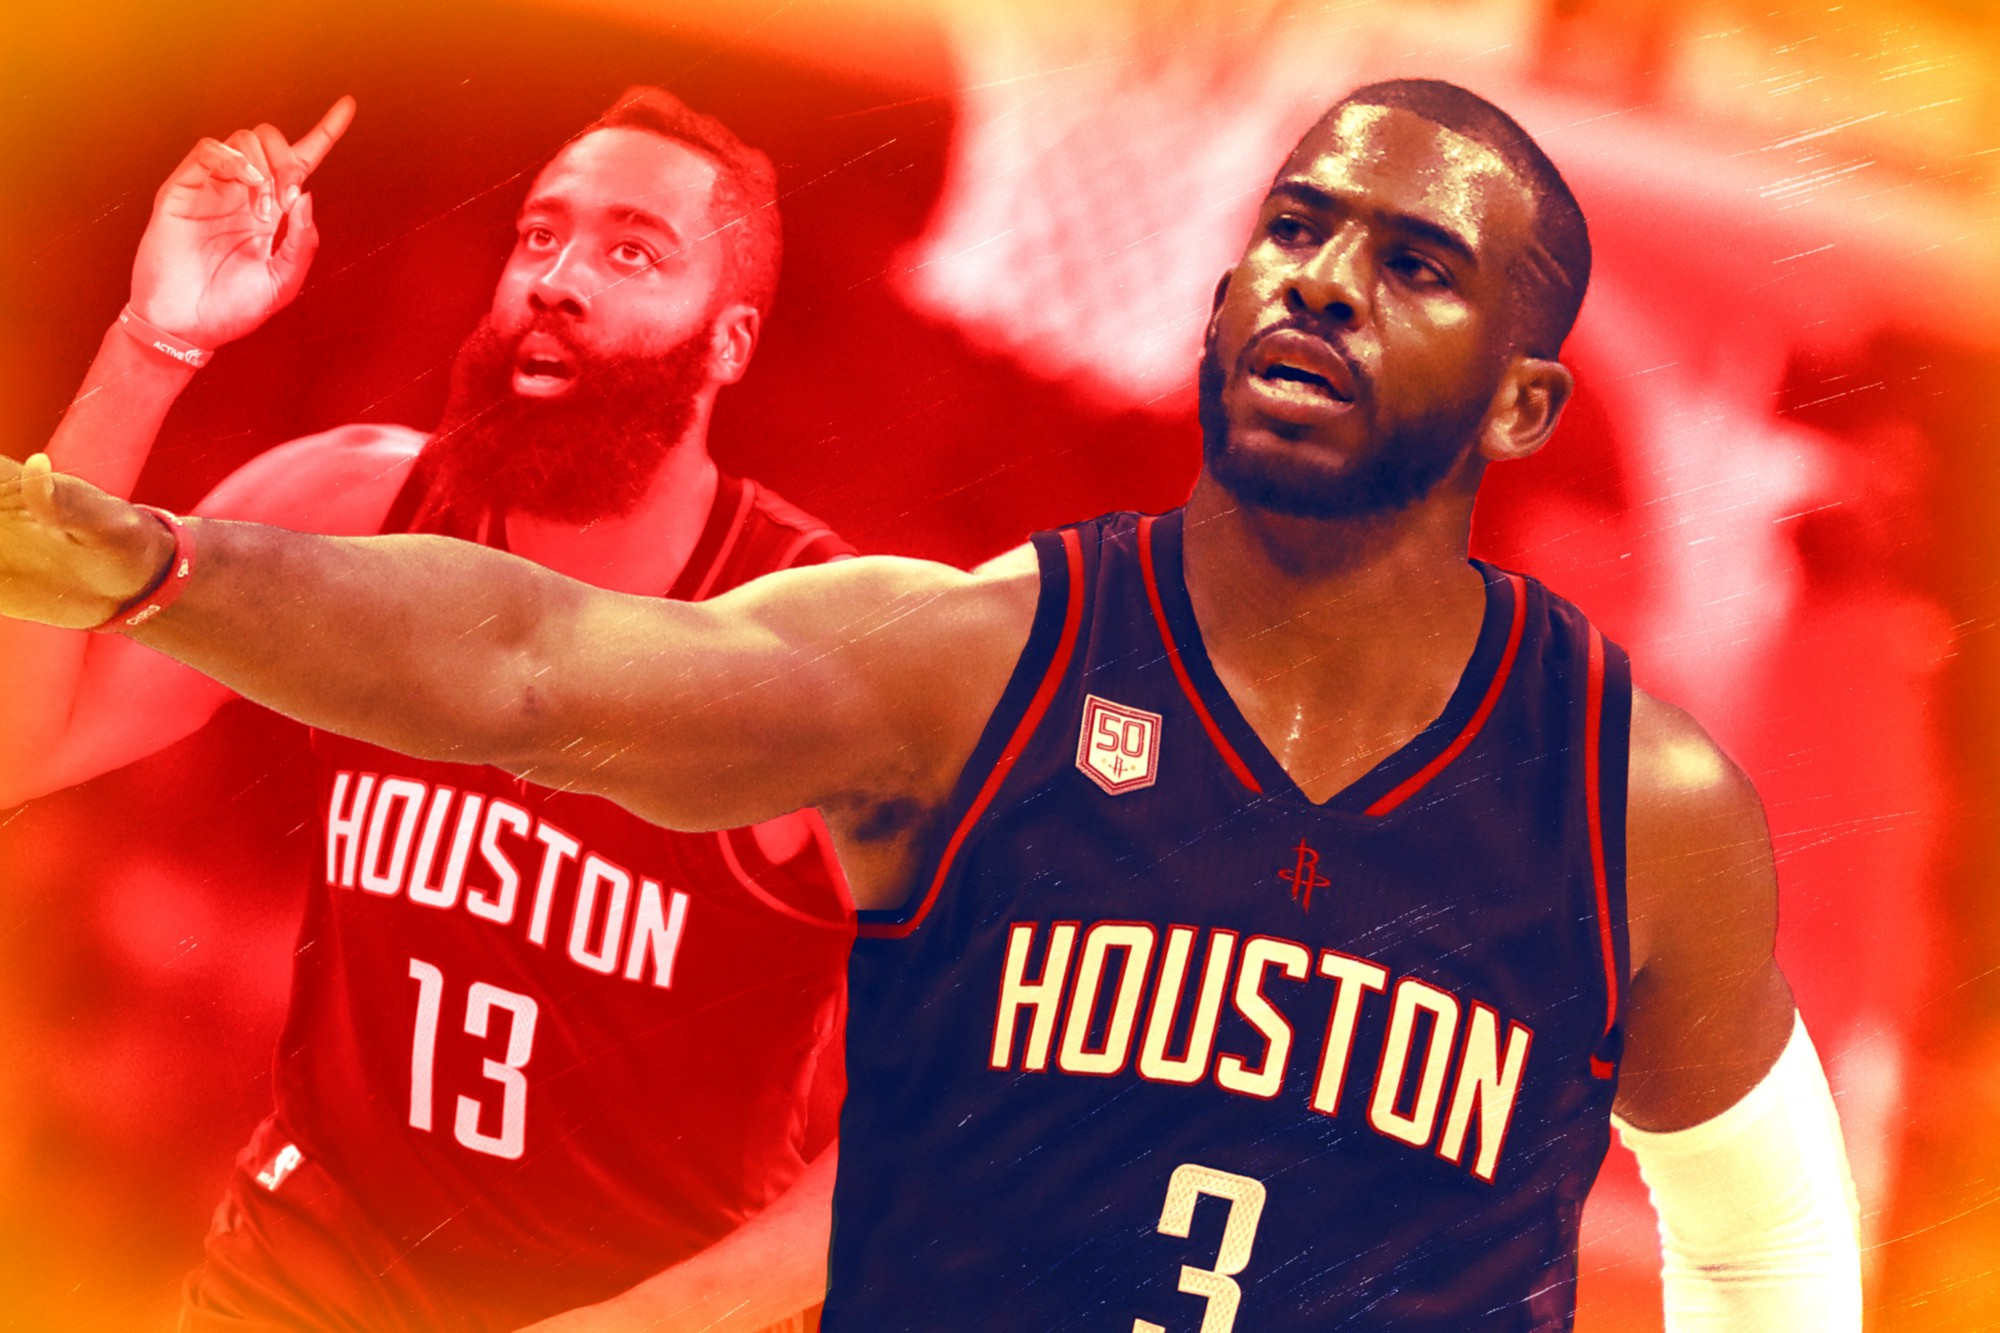 Will Chris Paul Propel The Rockets To New Heights?